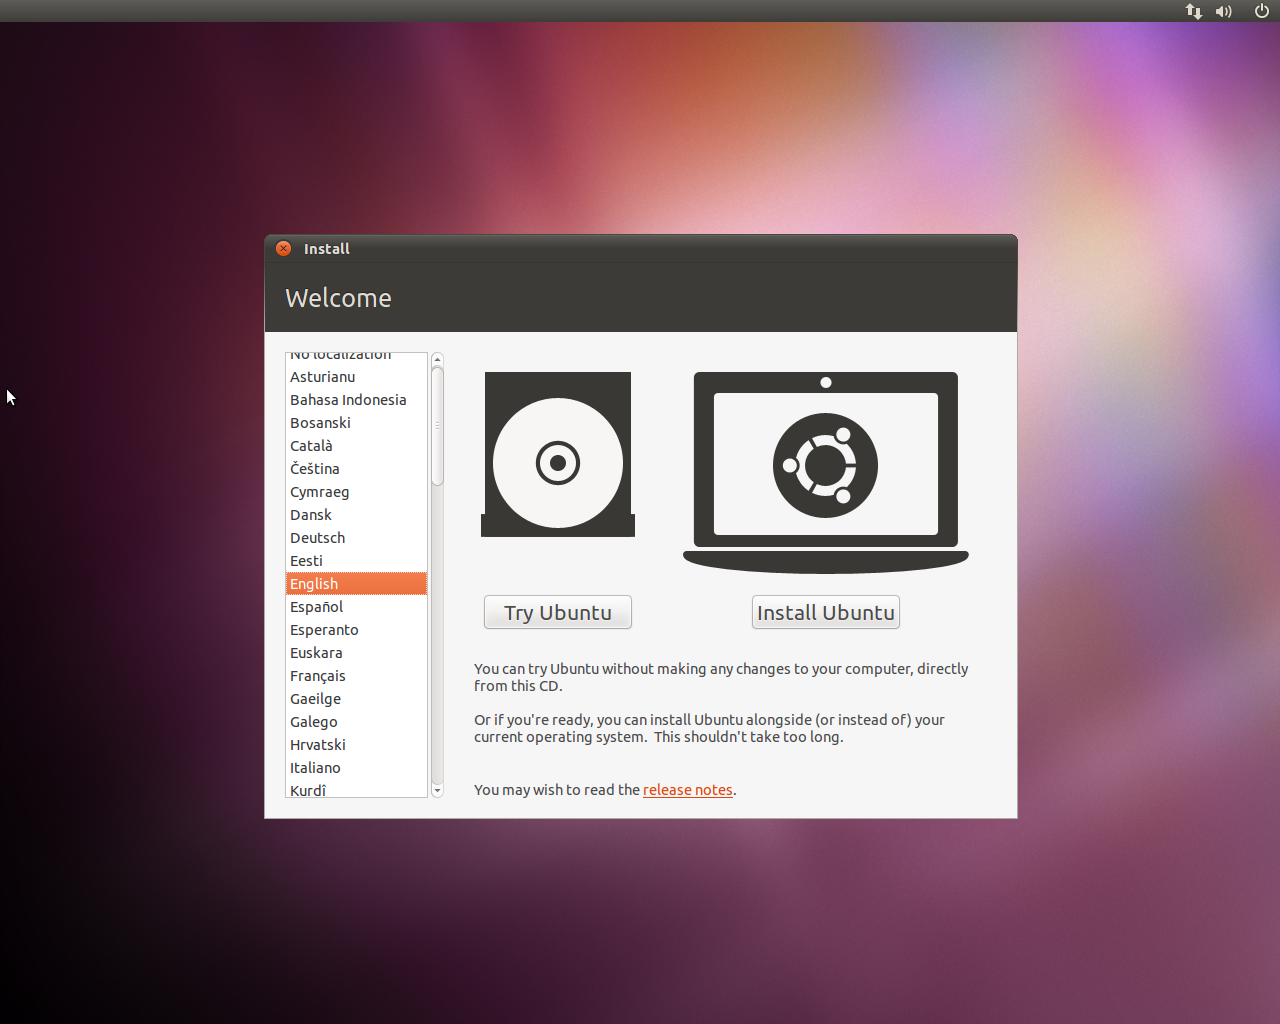 http://upload.wikimedia.org/wikipedia/commons/3/32/Ubuntu_10.10_Live_CD_start_screenshot.png